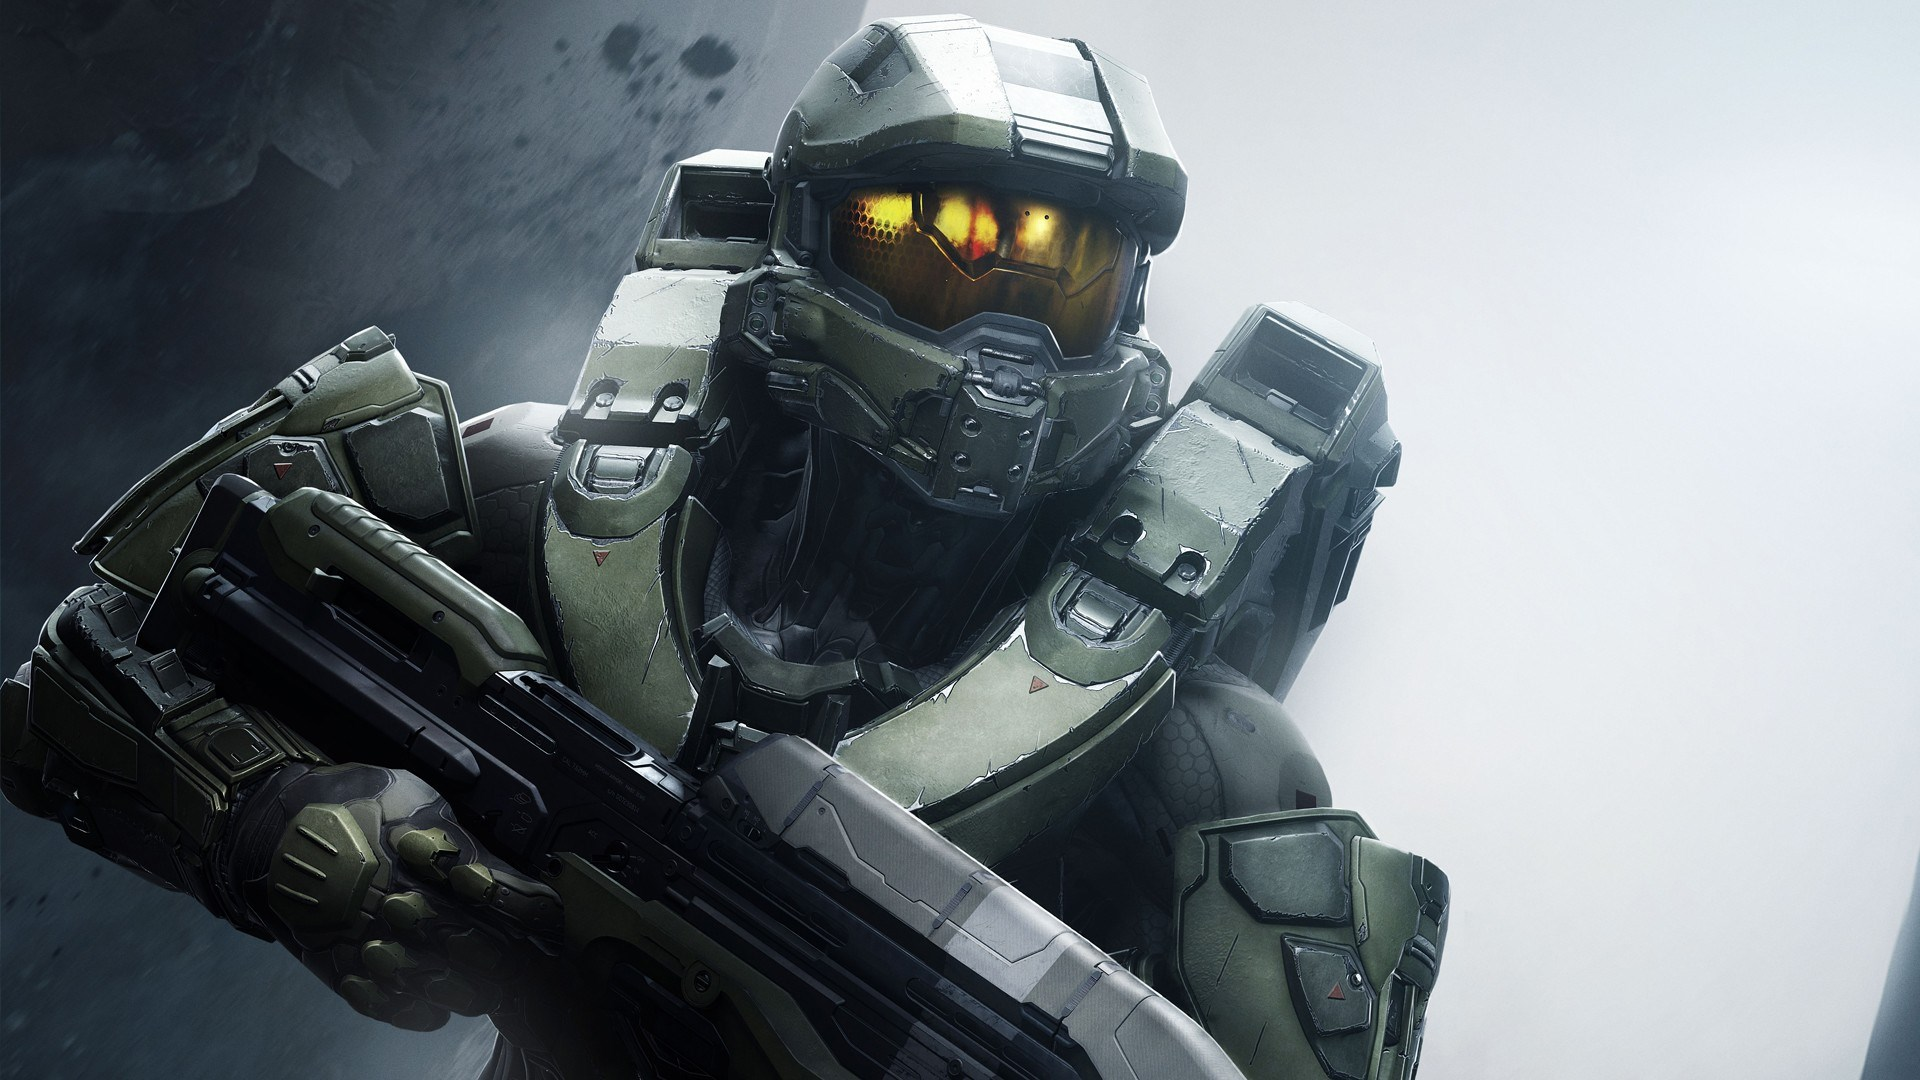 Halo-Guardians-High-Definition-Backgrounds-1920x1080-kB-wallpaper-wp3806218